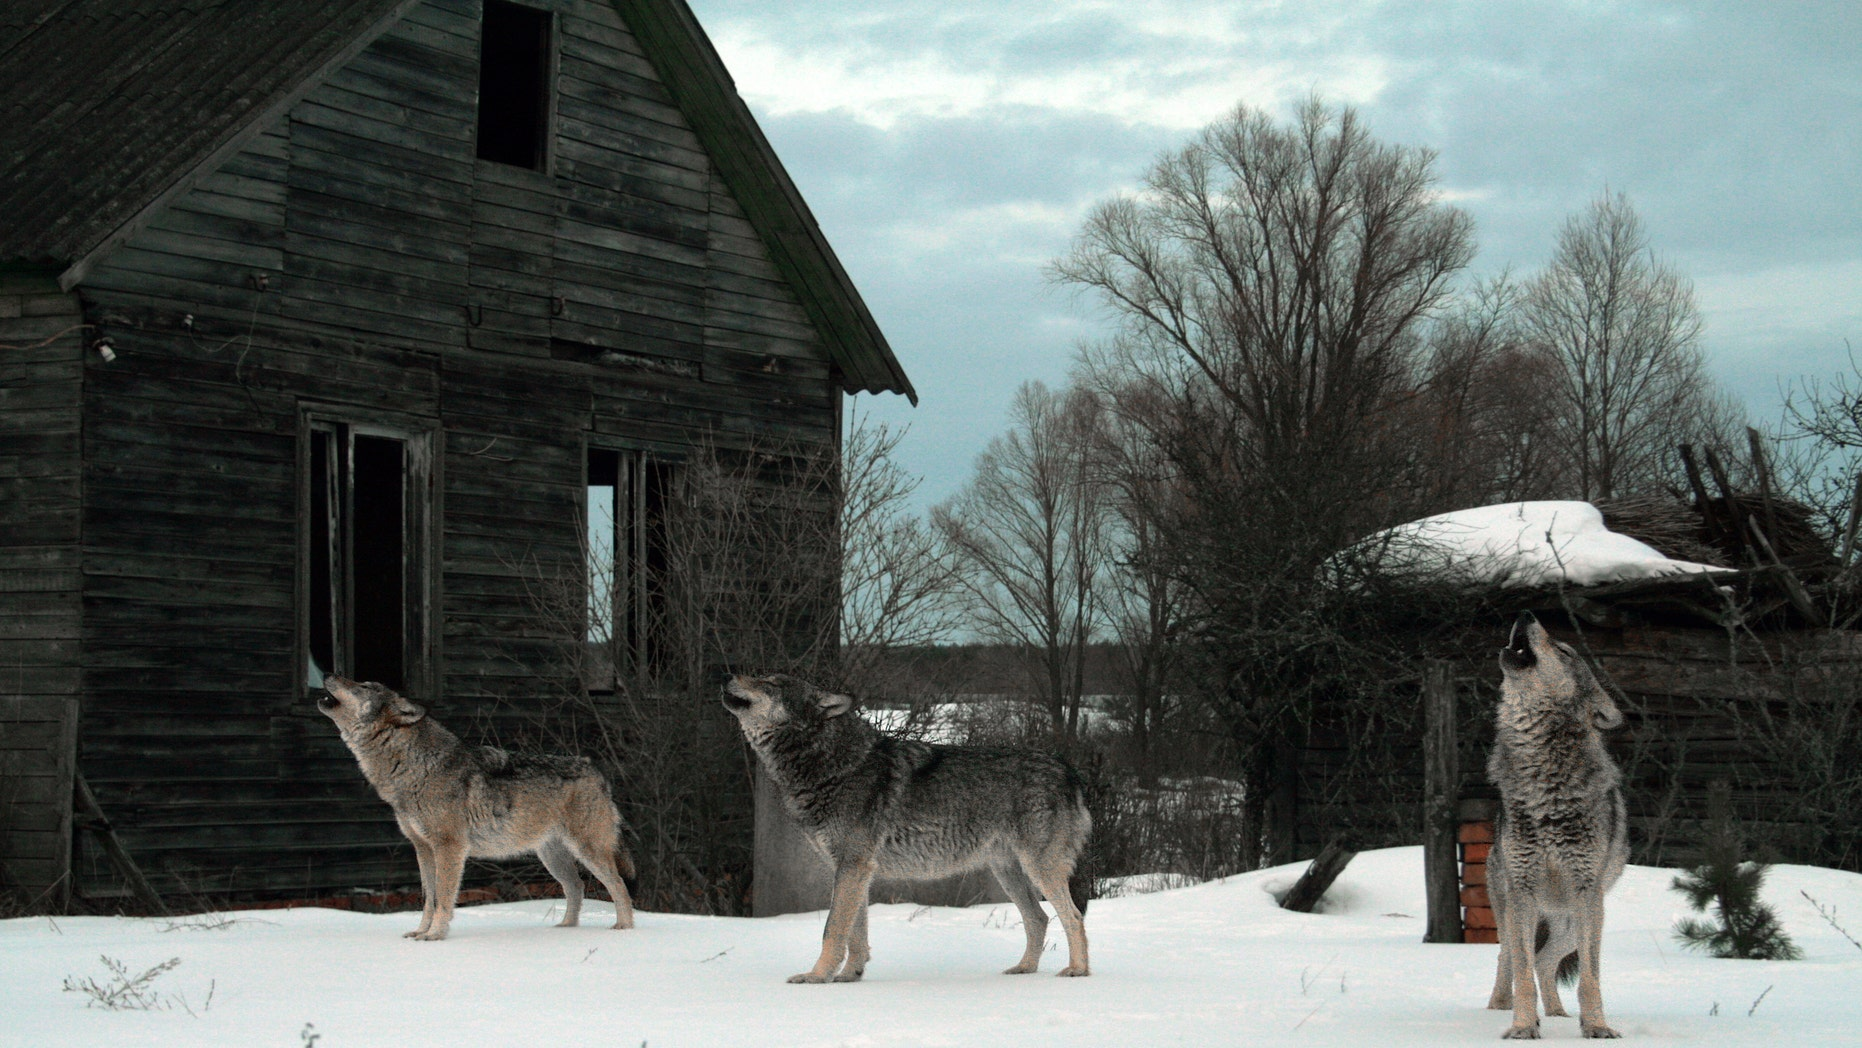 Howling wolves in abandoned village (Chernobyl) (Ihar Byshniou) (Credit: iStock)